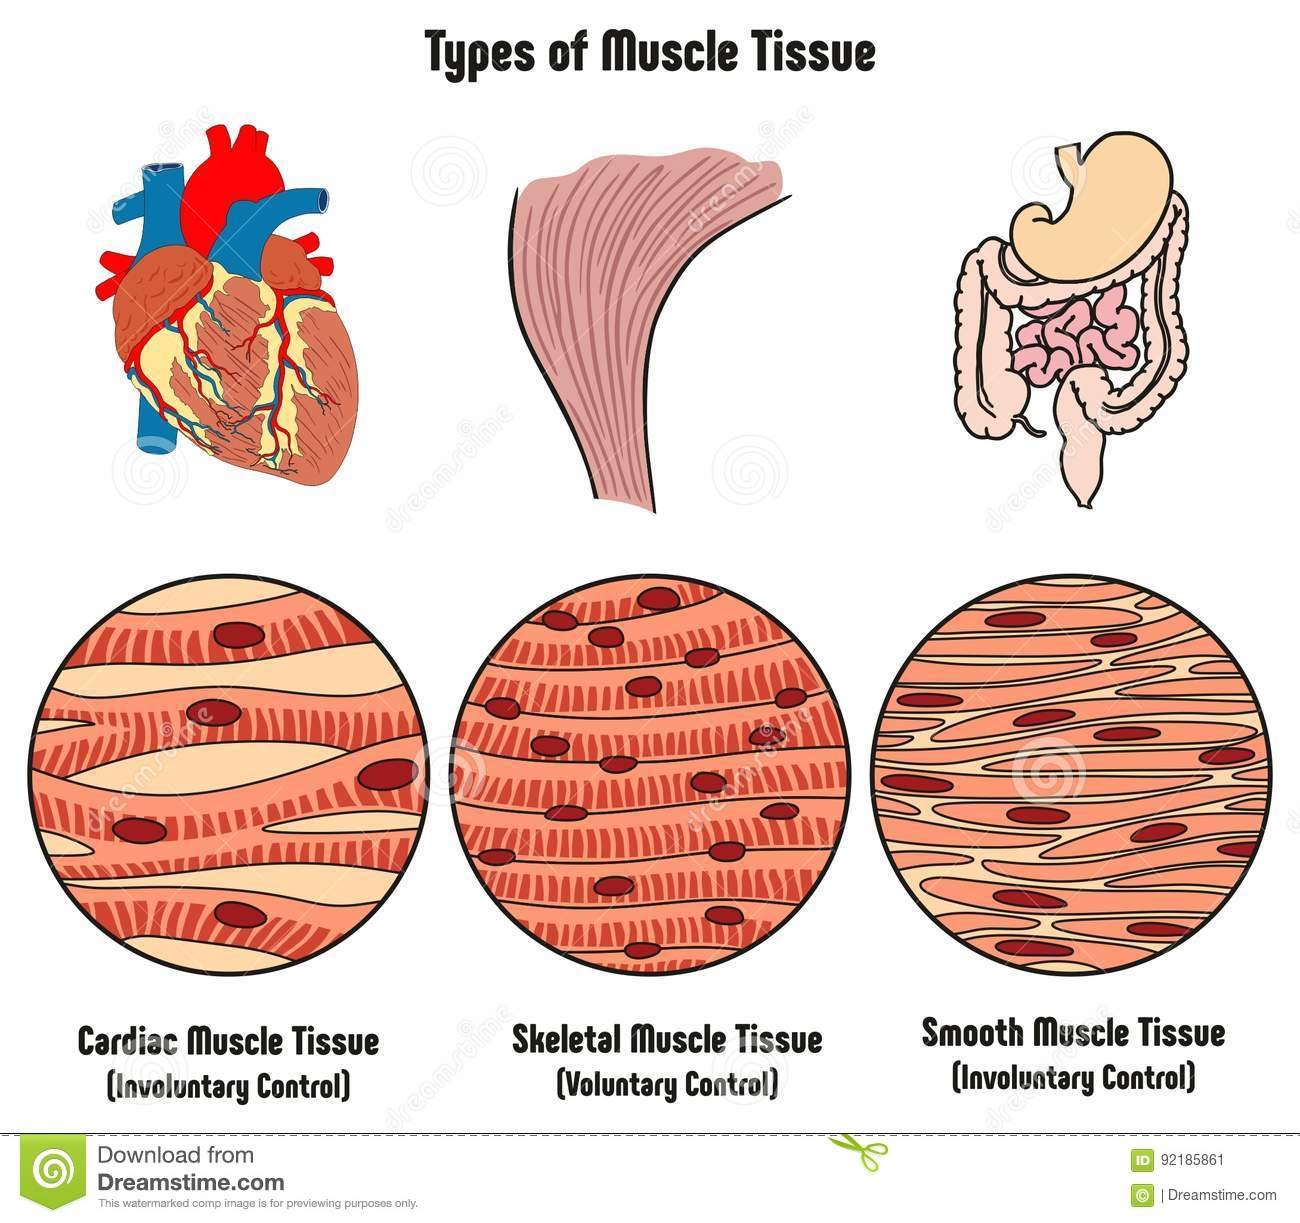 Groovy Types Of Muscle Tissue Of Human Body Diagram Stock Vector Wiring Cloud Hisonuggs Outletorg